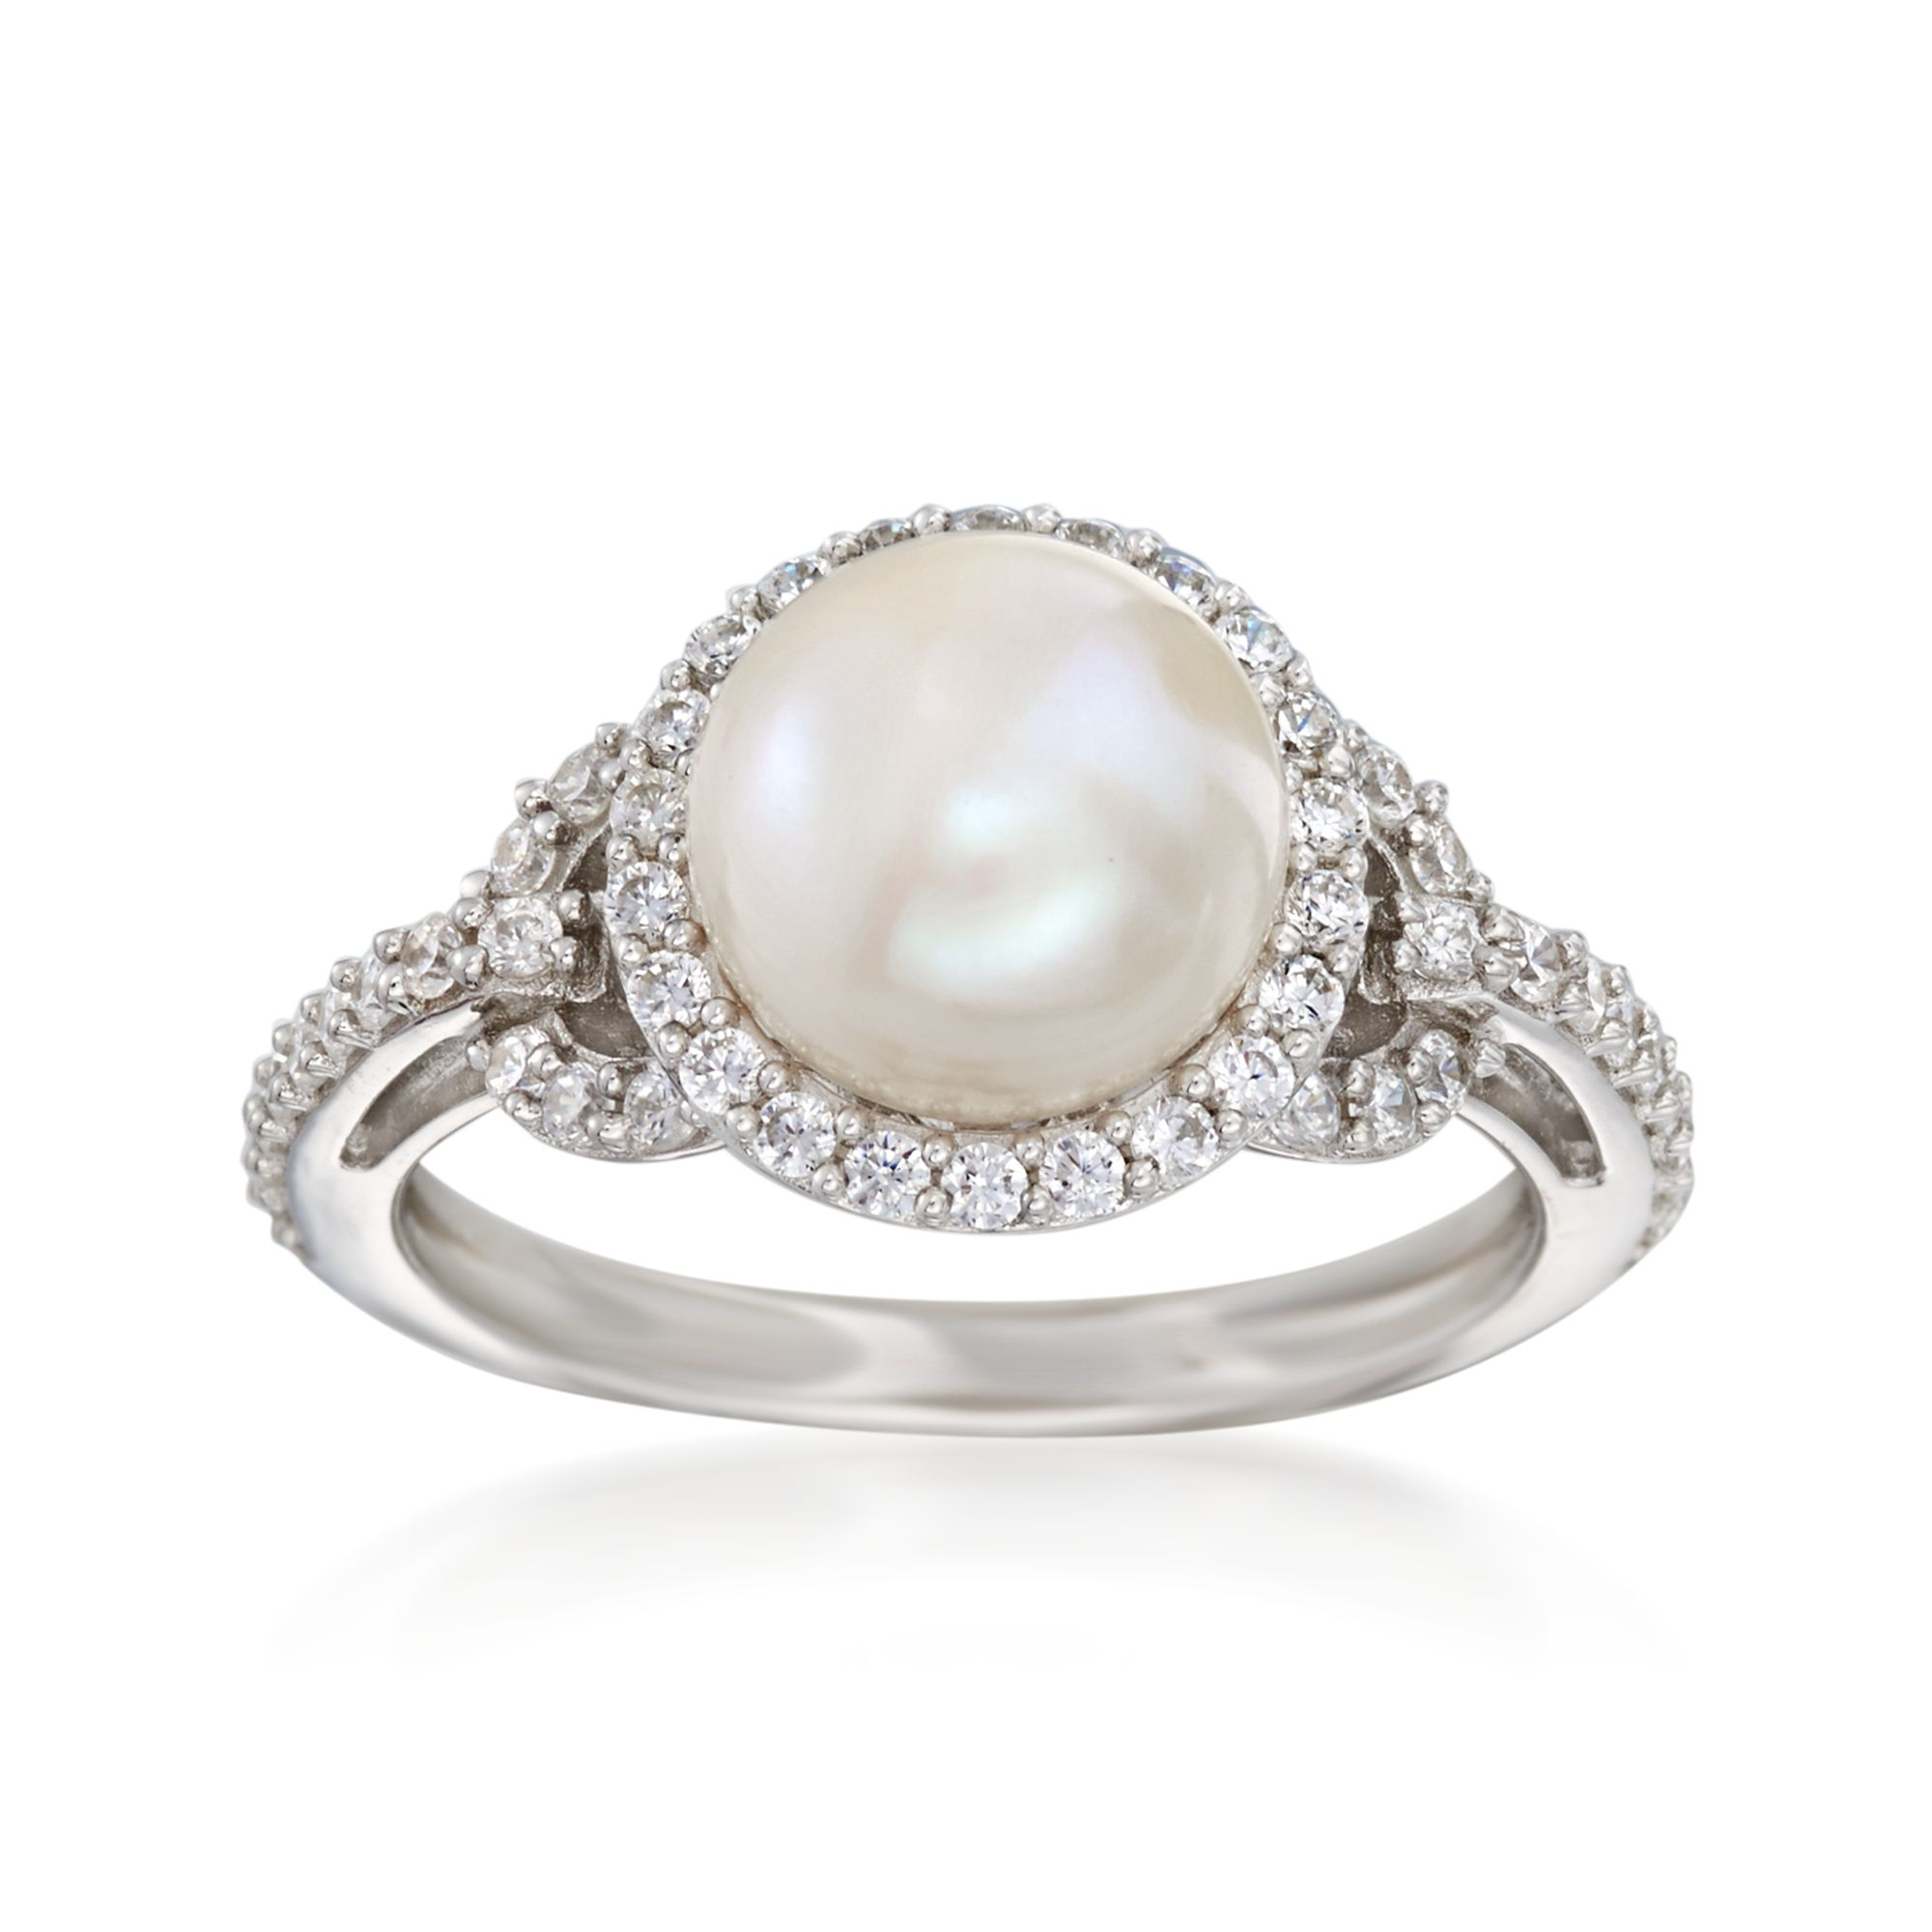 8 mm NATURAL bouton//Round Freshwater Pearl Sterling Silver 925 Ring W Zircone cubique accents